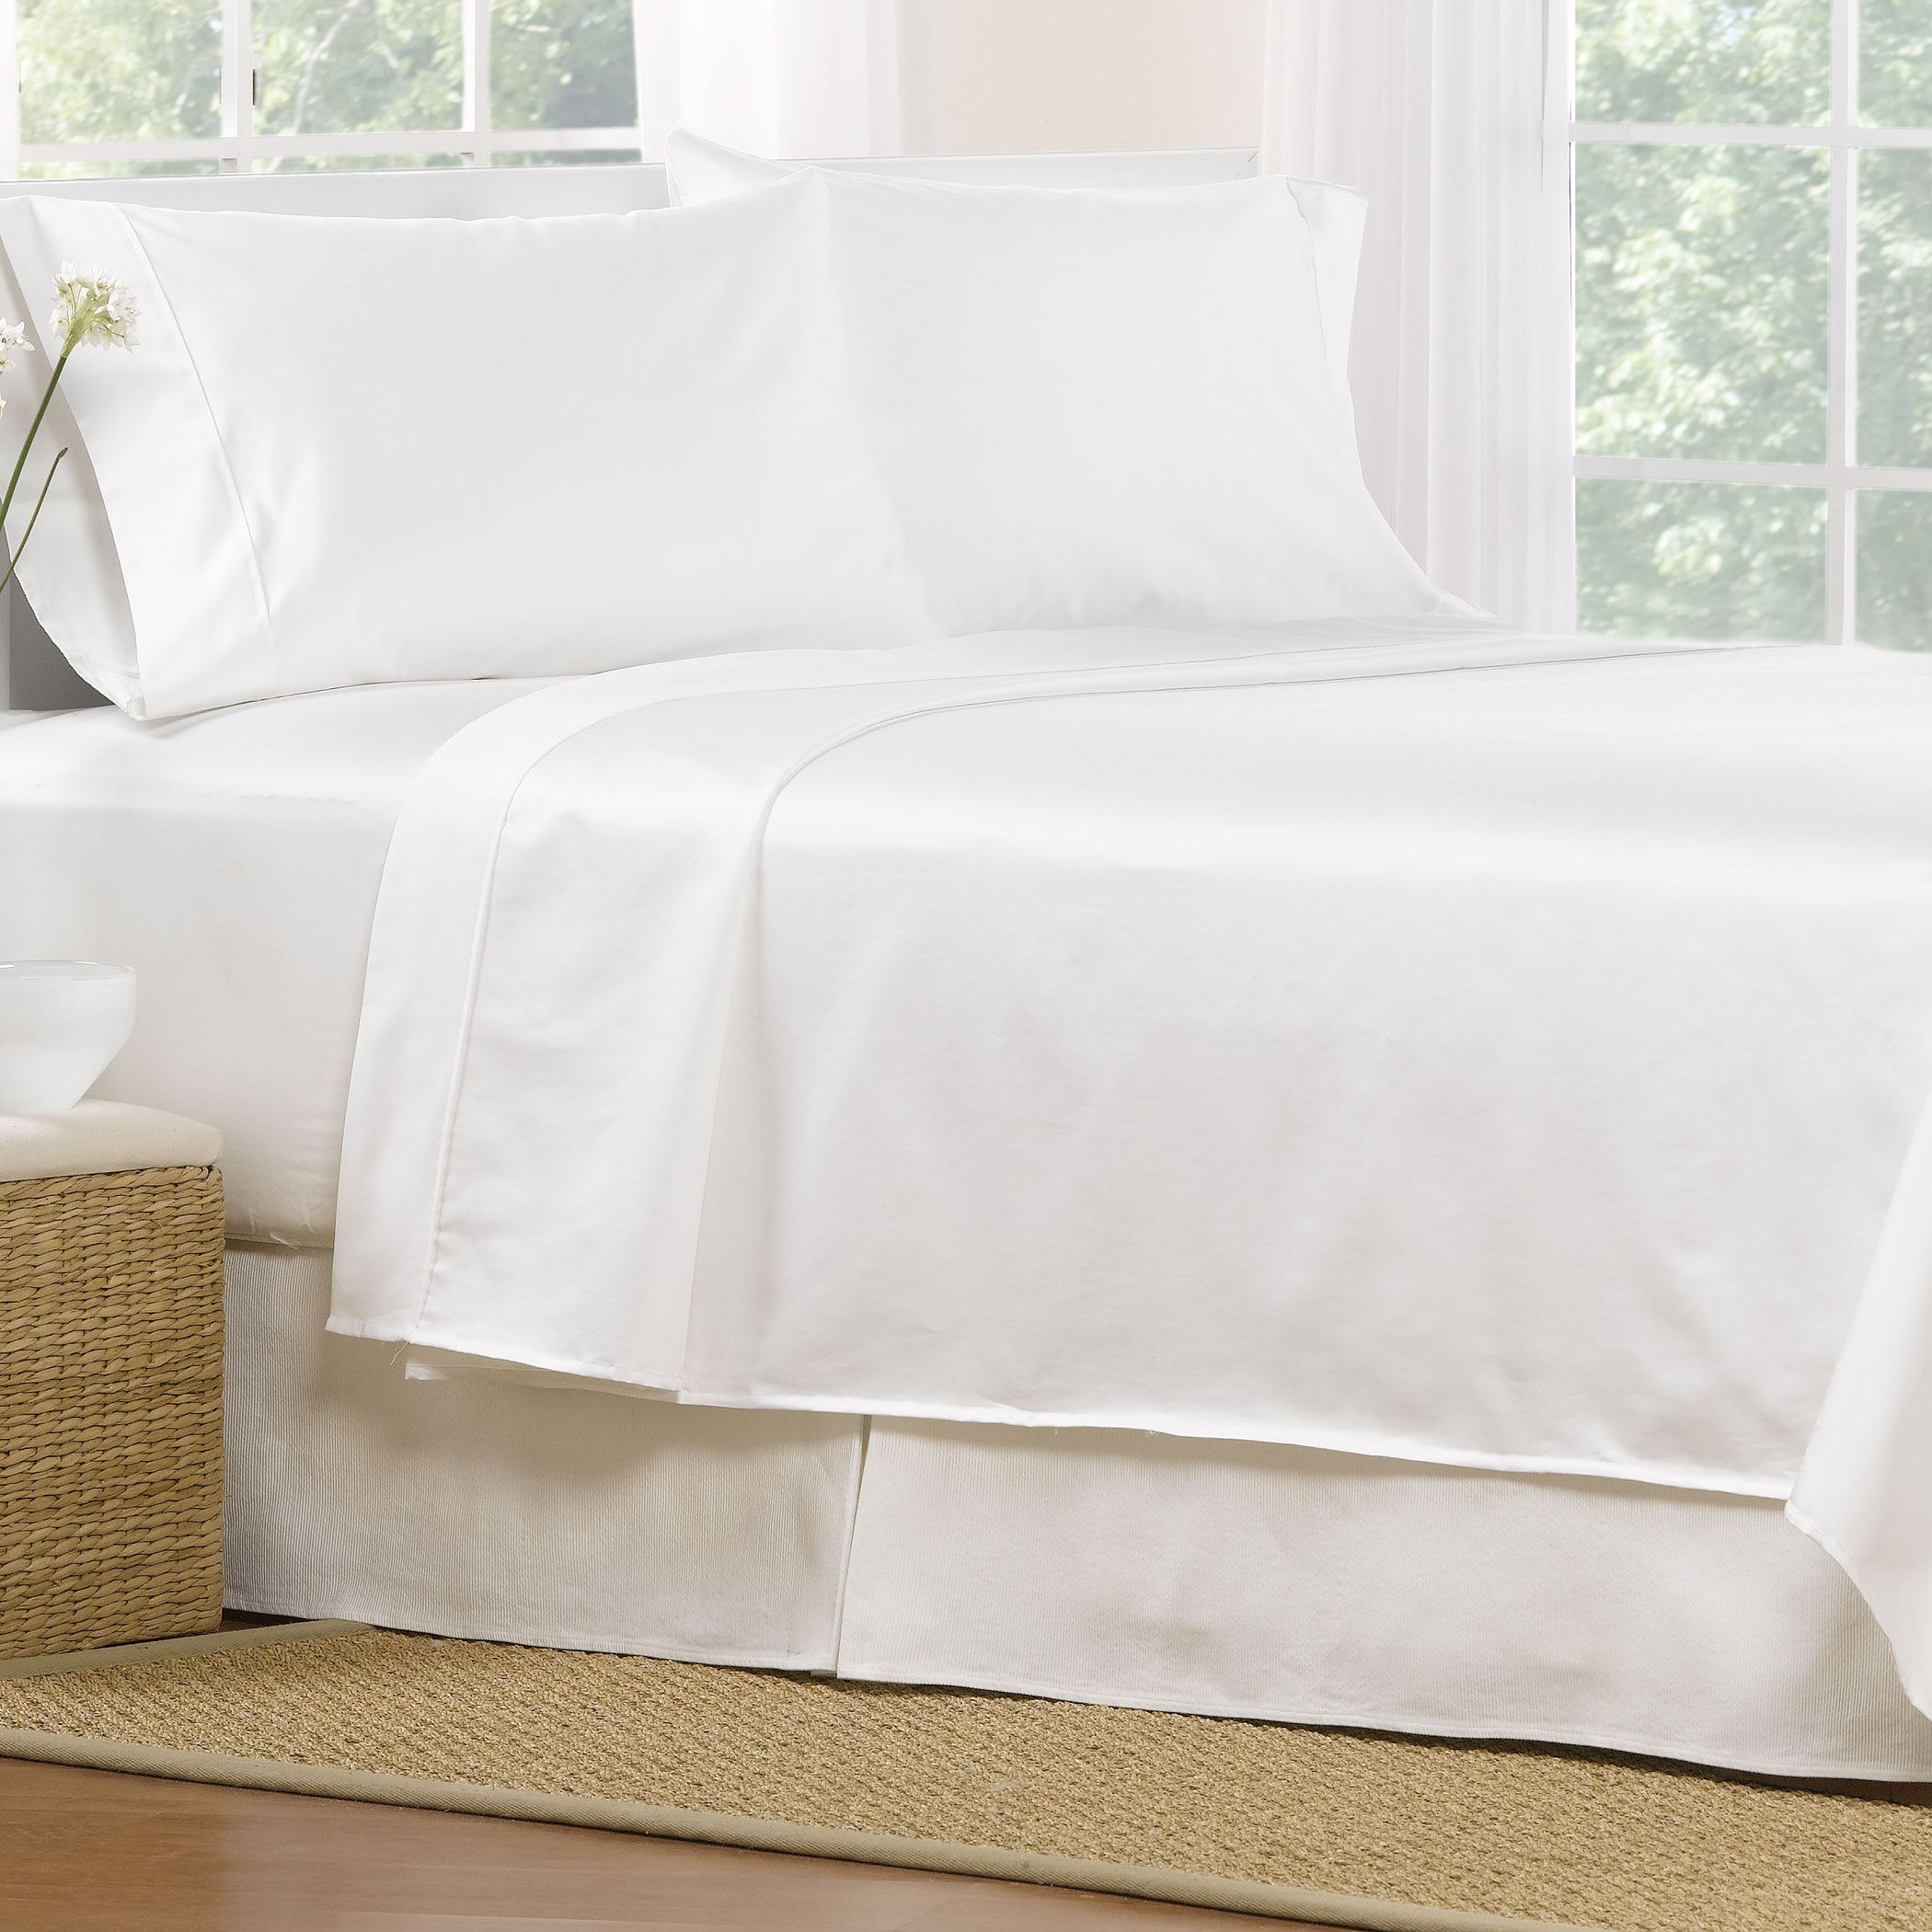 4 Piece 1000 Thread Count Egyptian Quality Cotton Sheet Set Color: White, Size: Full